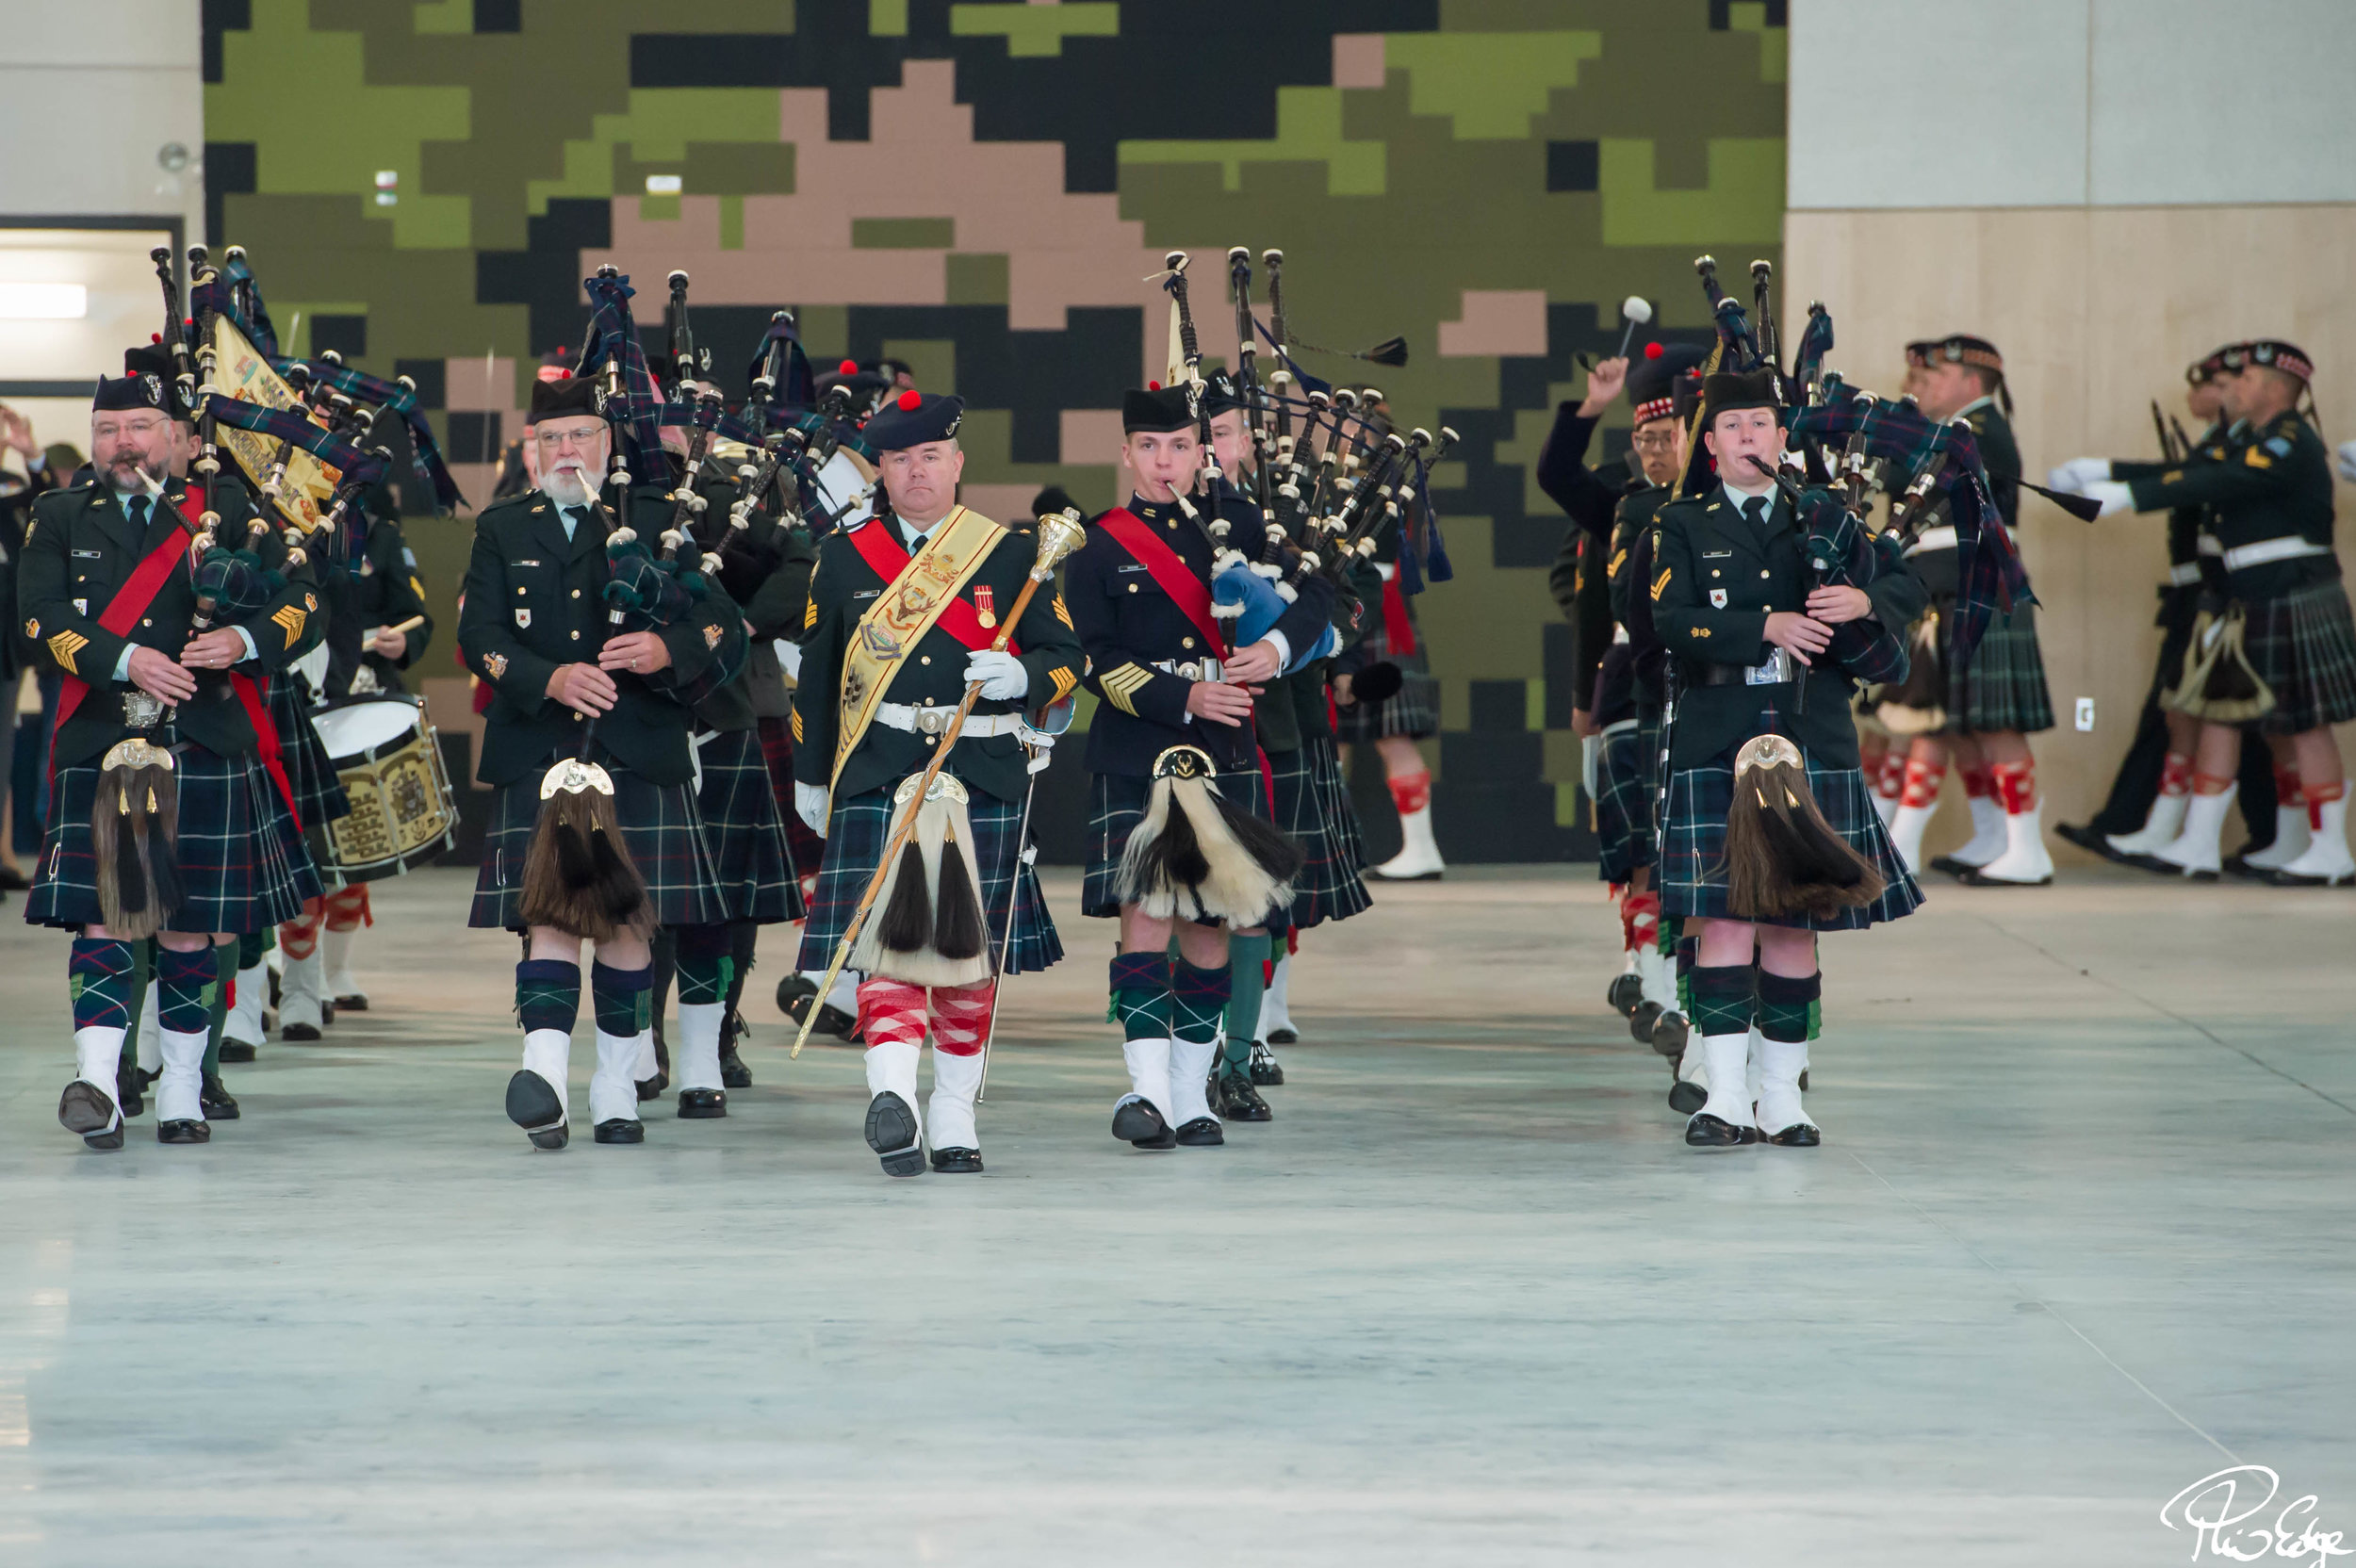 Seaforth Highlanders of Canada Homecoming 24 Sept 16 No-148.jpg